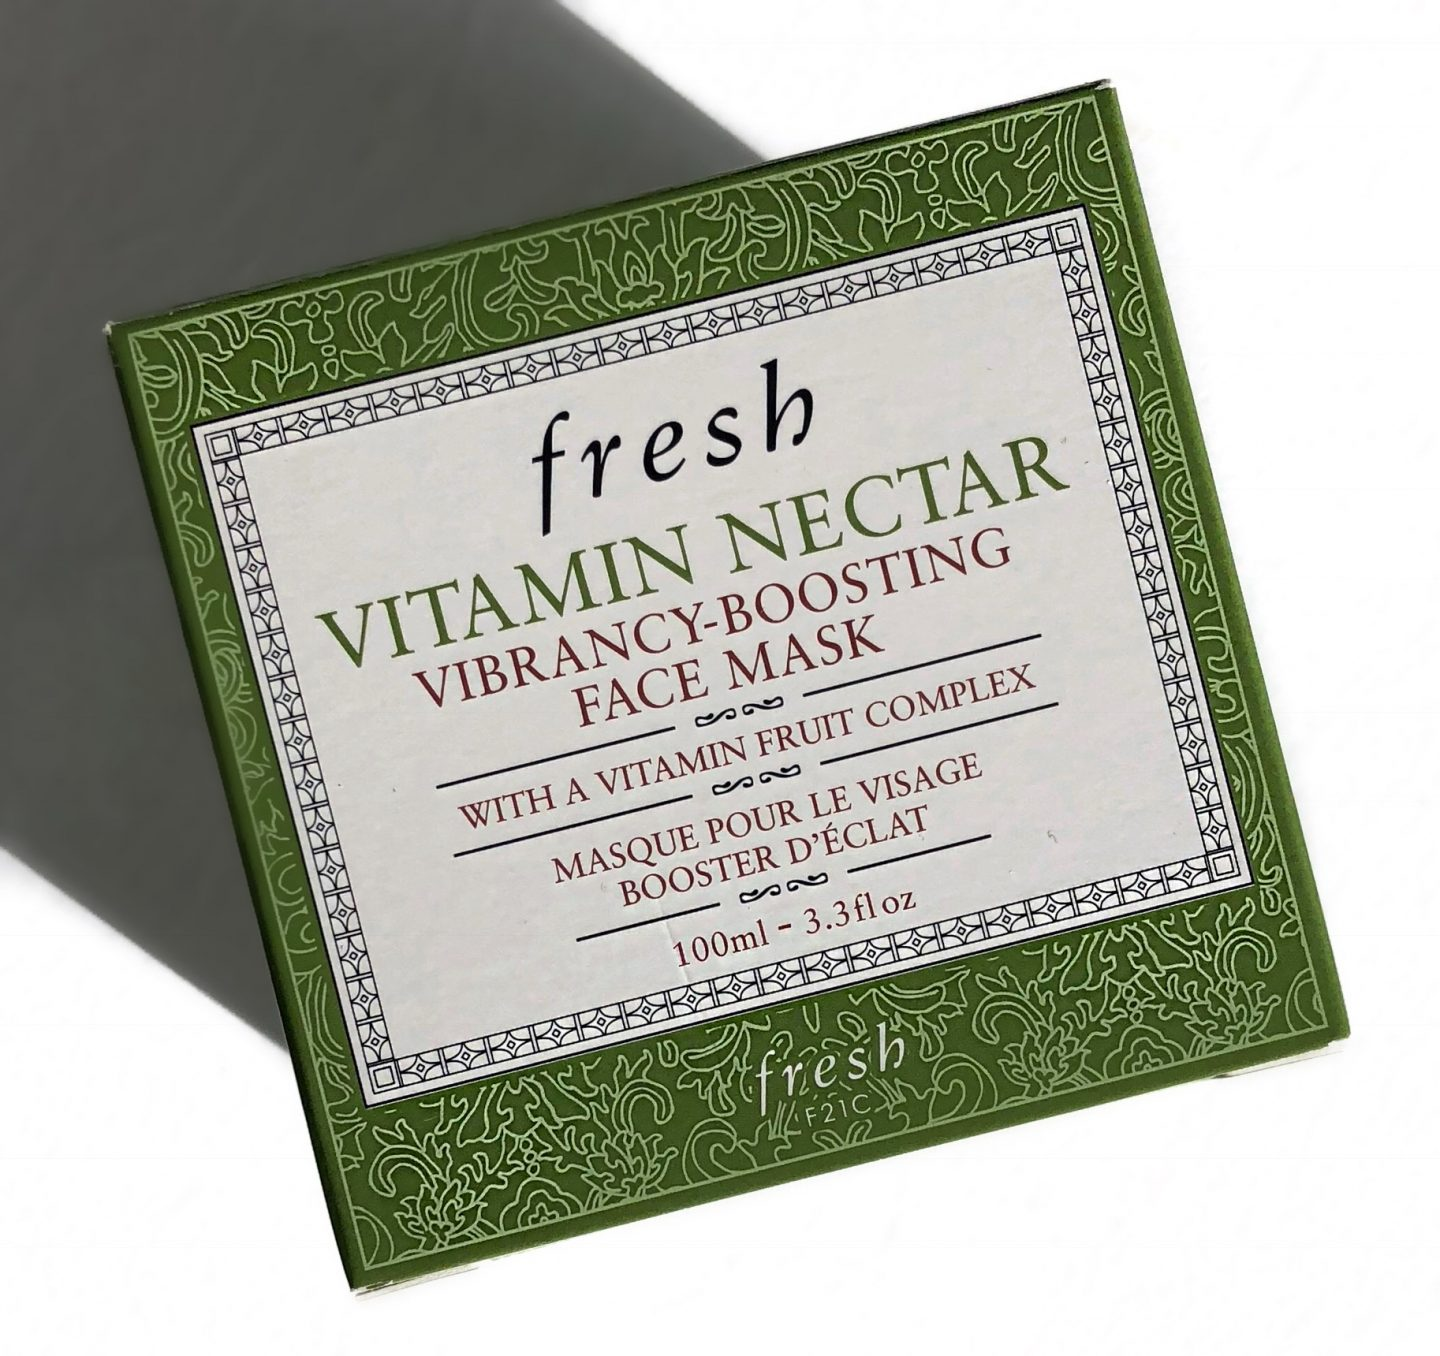 Fresh Vitamin Nectar Glow Face Mask